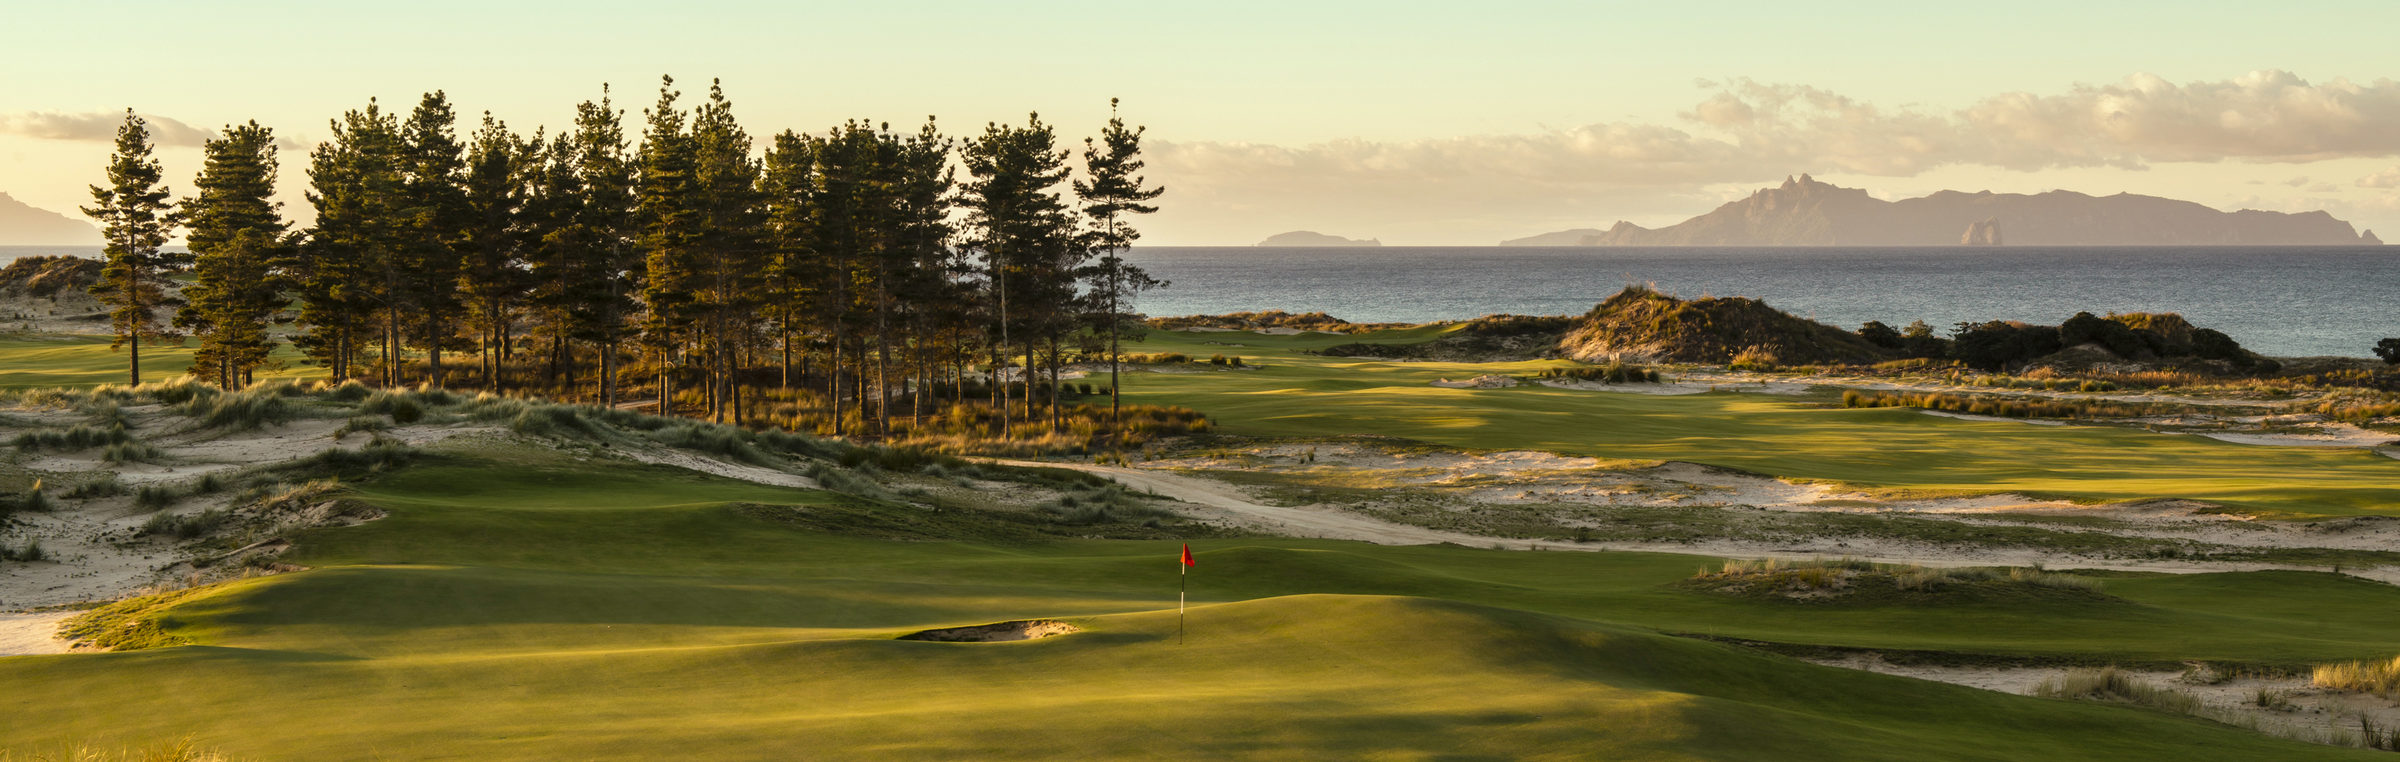 Nz Golf Tours South Island